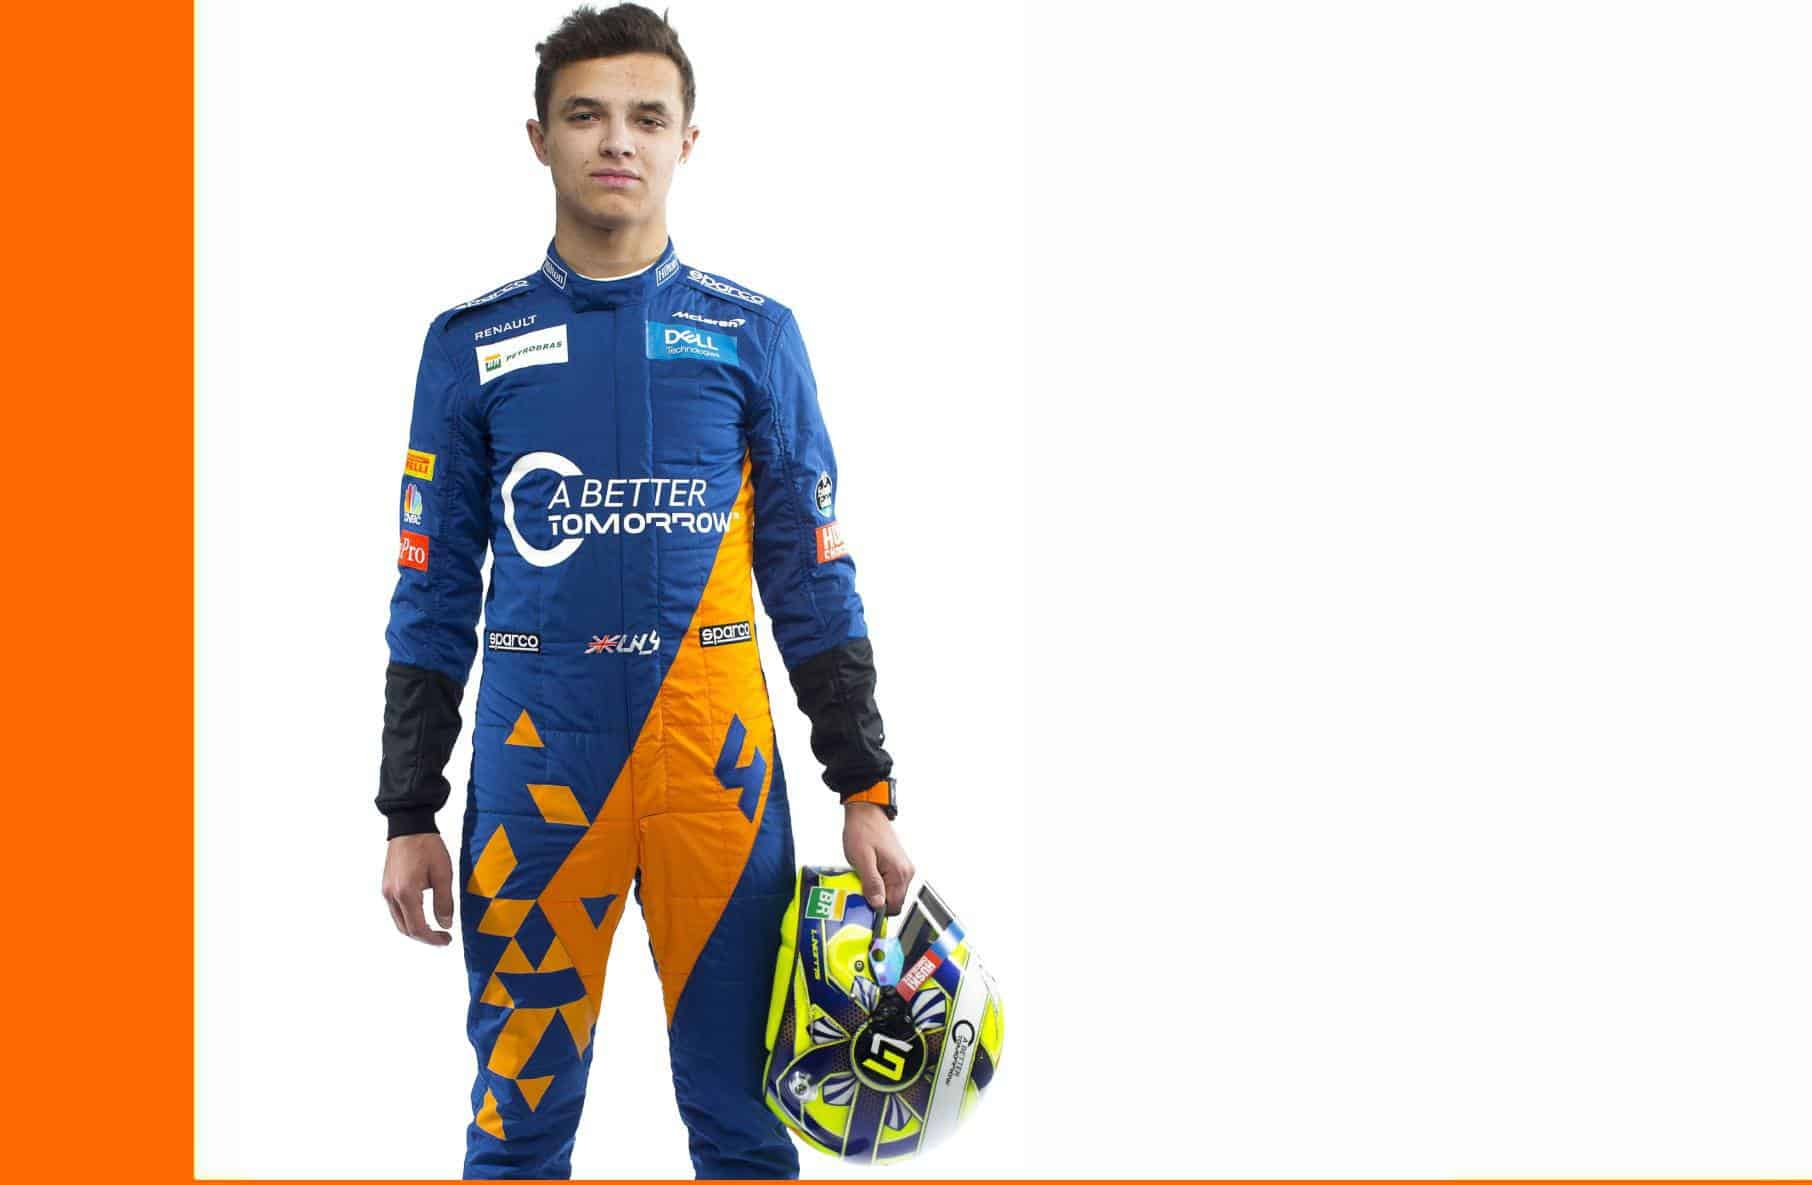 Lando-Norris-McLaren-Renault-F1-2019-drivers-profile-Photo-MAXF1net